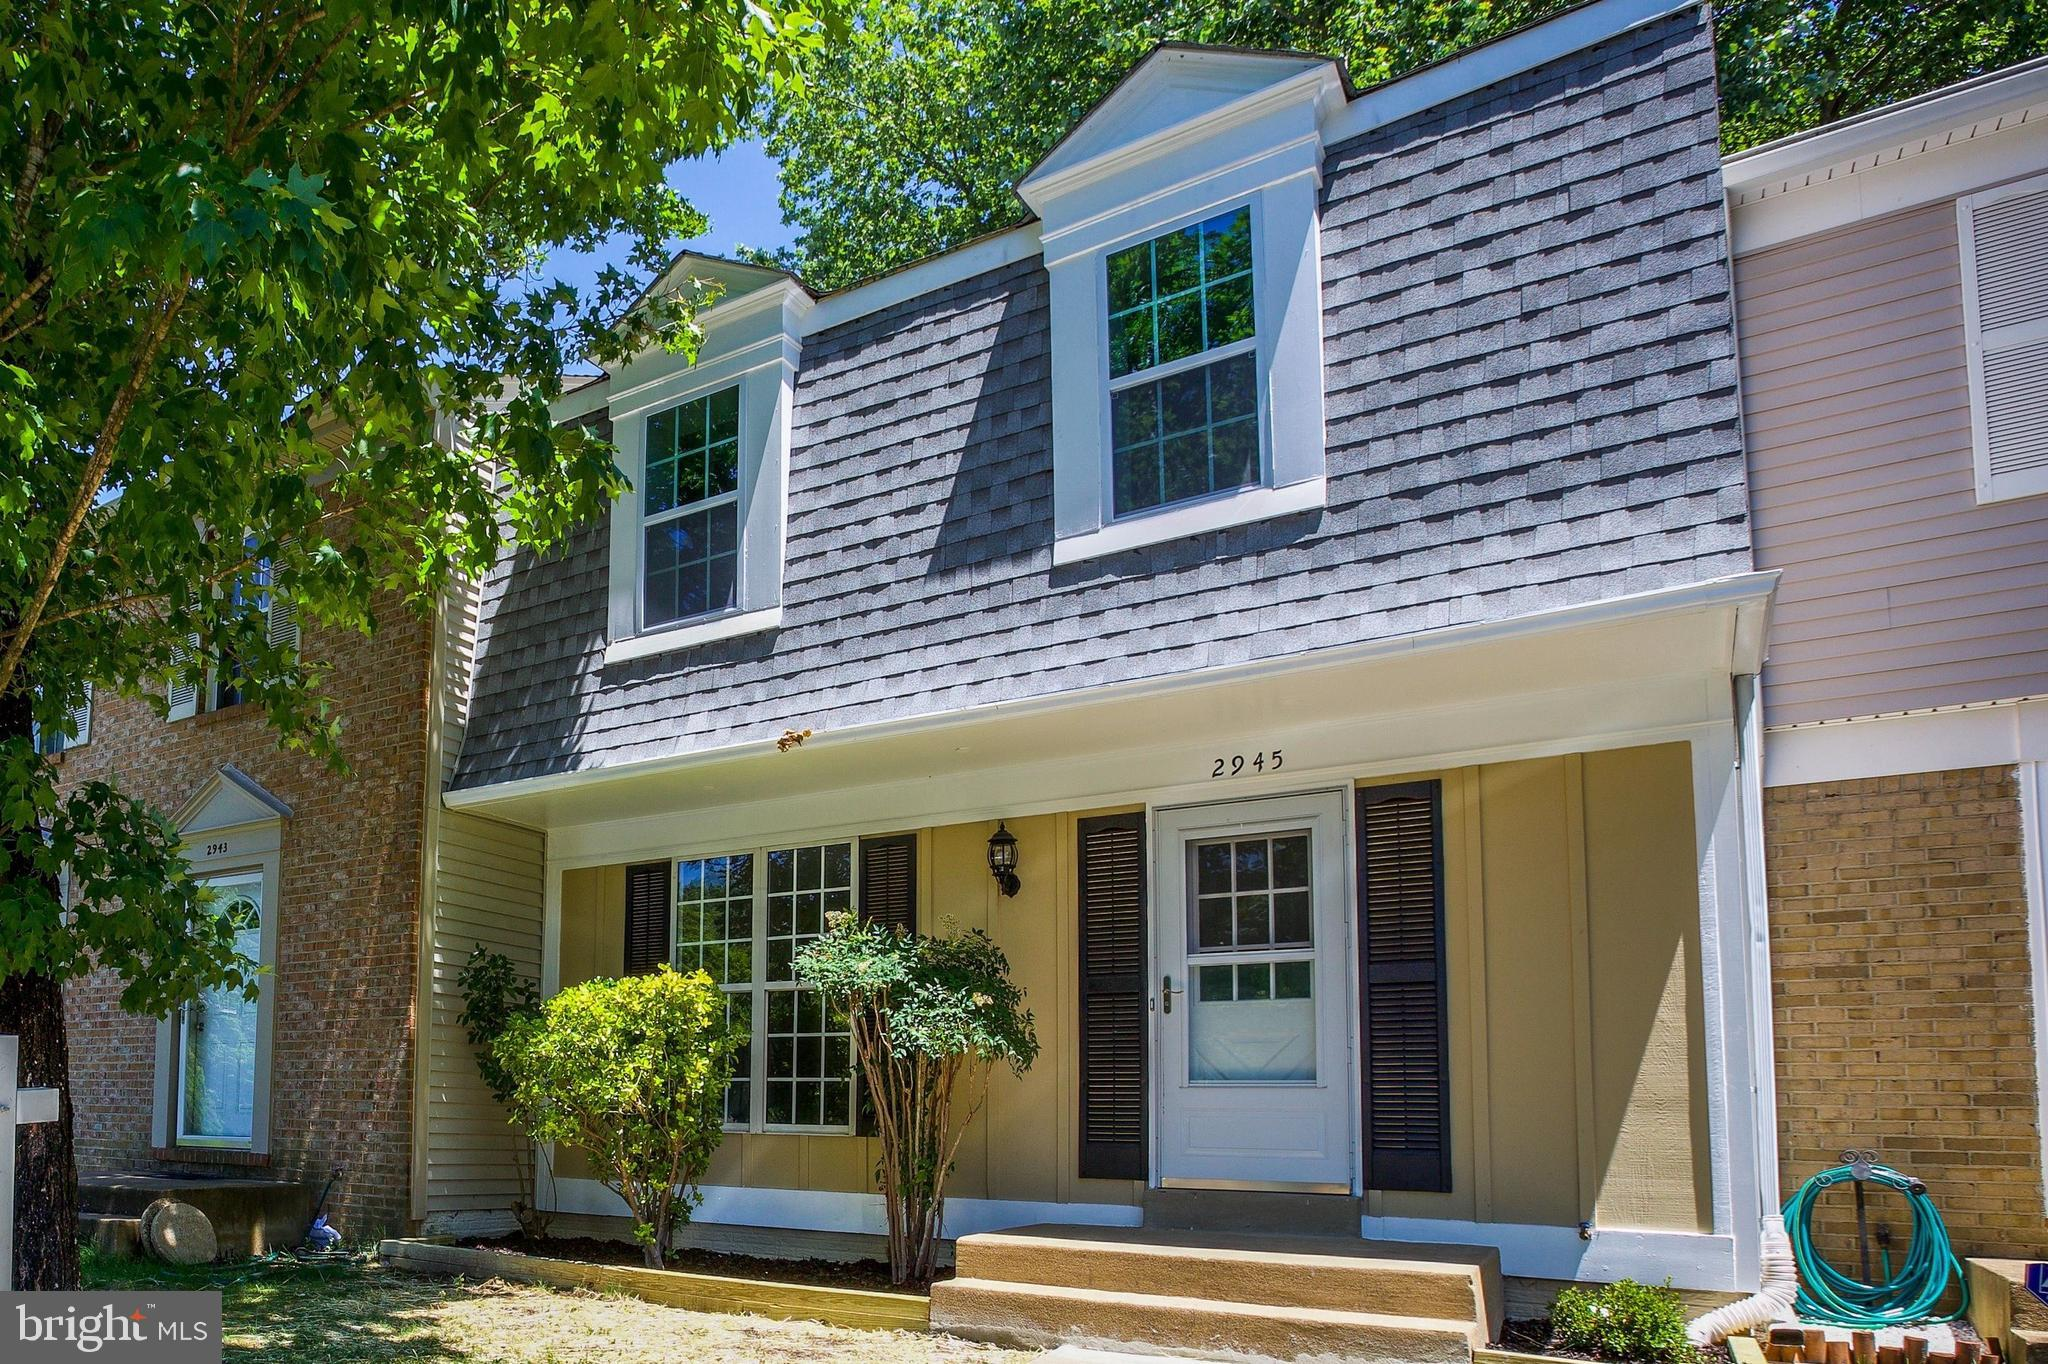 Beautifully remodeled 3 bedroom 2.5 bathrooms townhouse with stainless steel appliances, granite cou